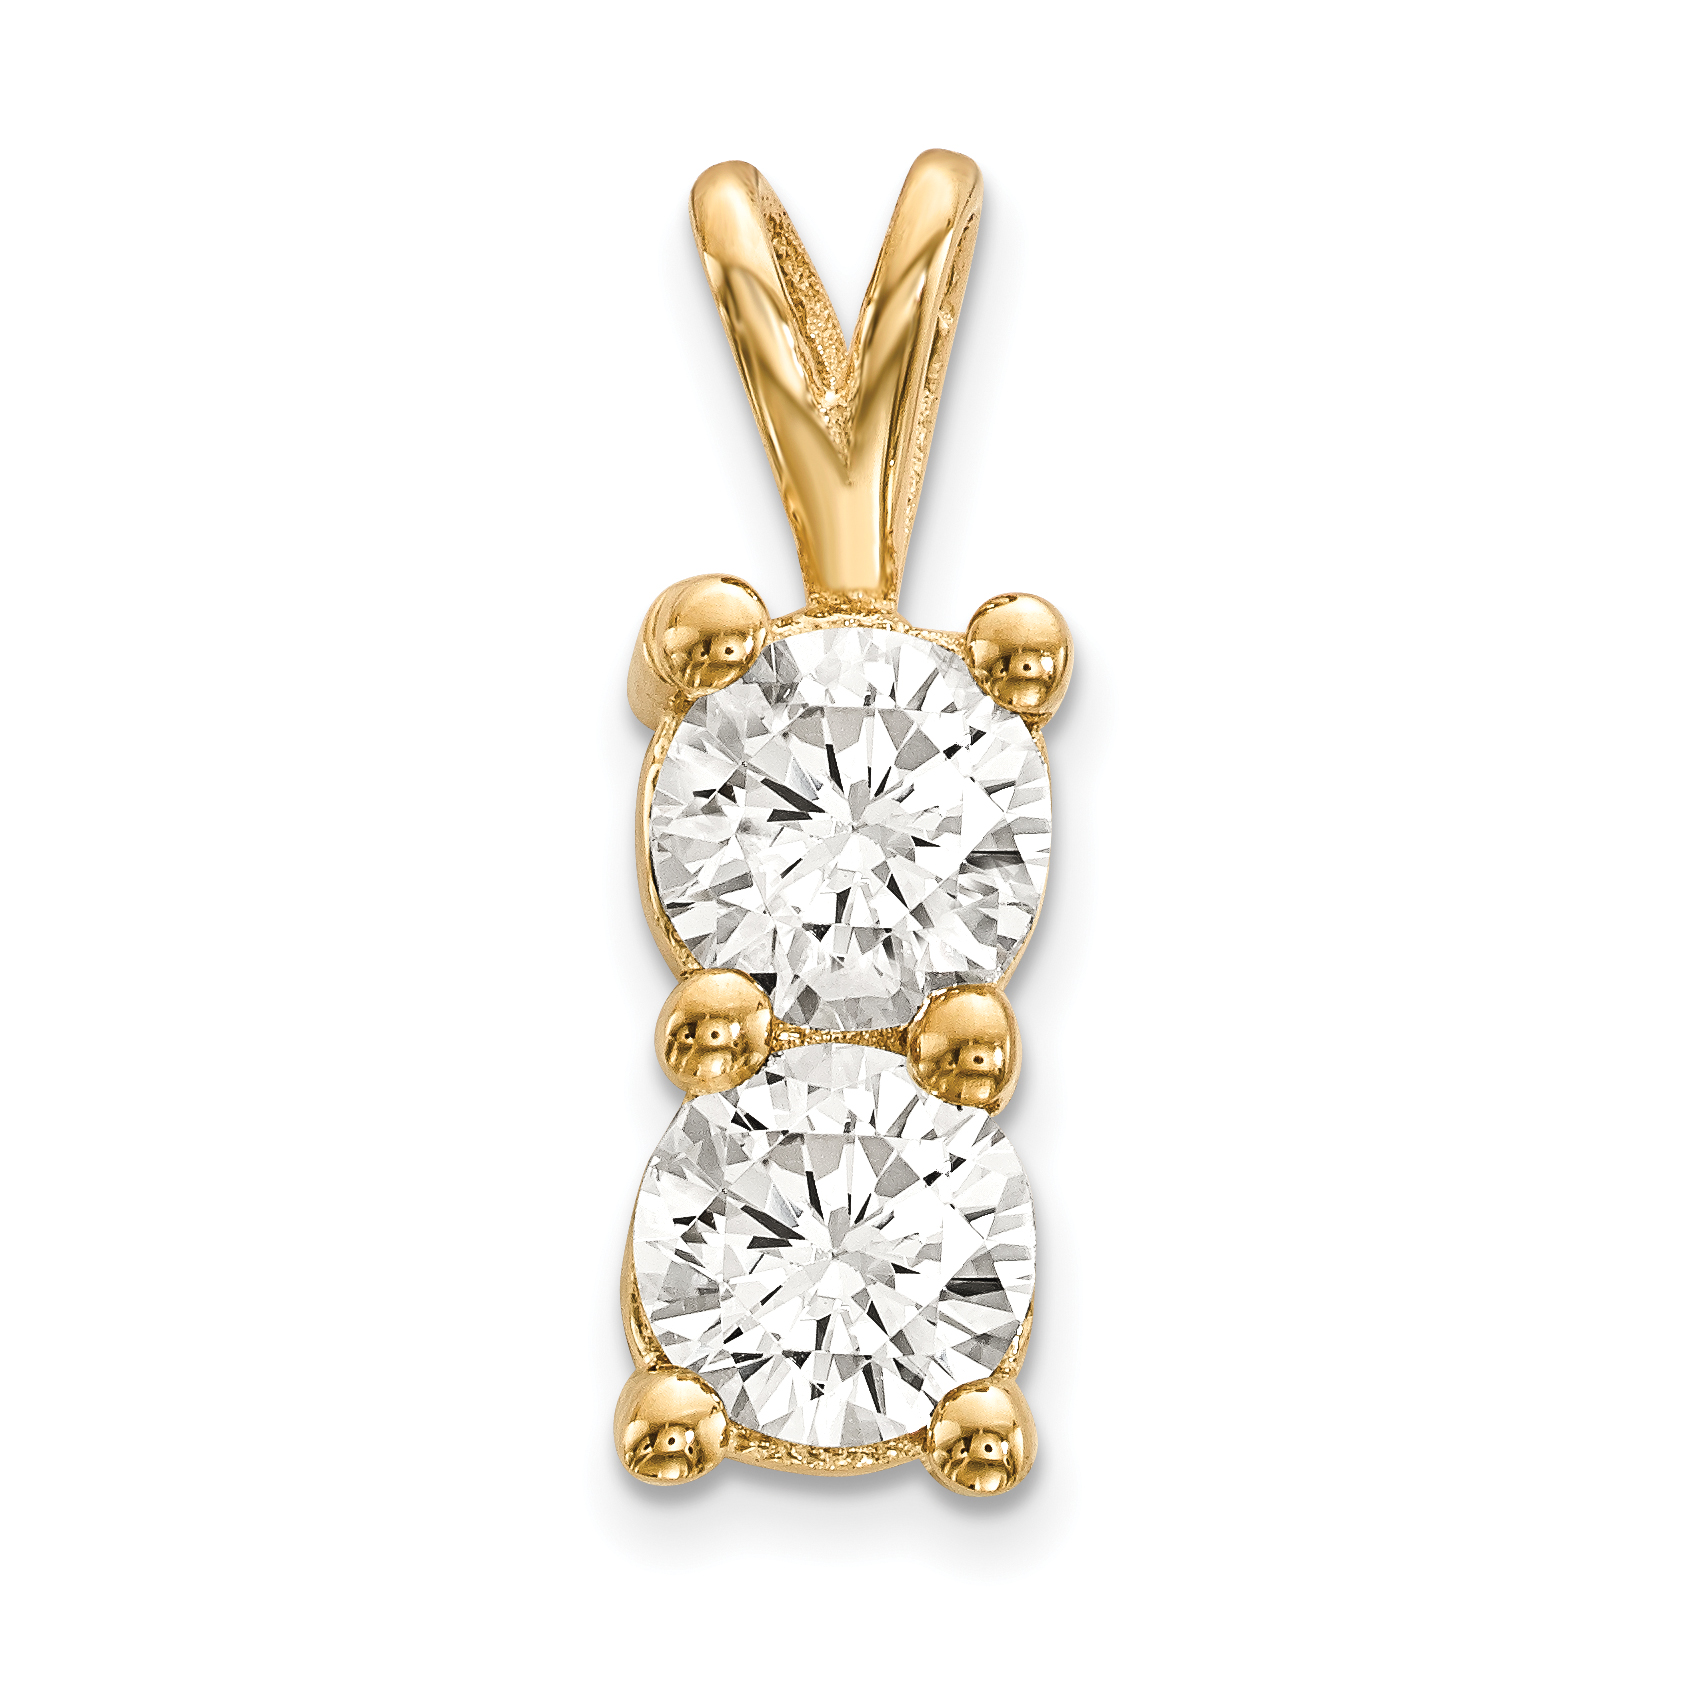 14K Yellow GoldY Polished 2-stone Casting - 4.8 mm center...